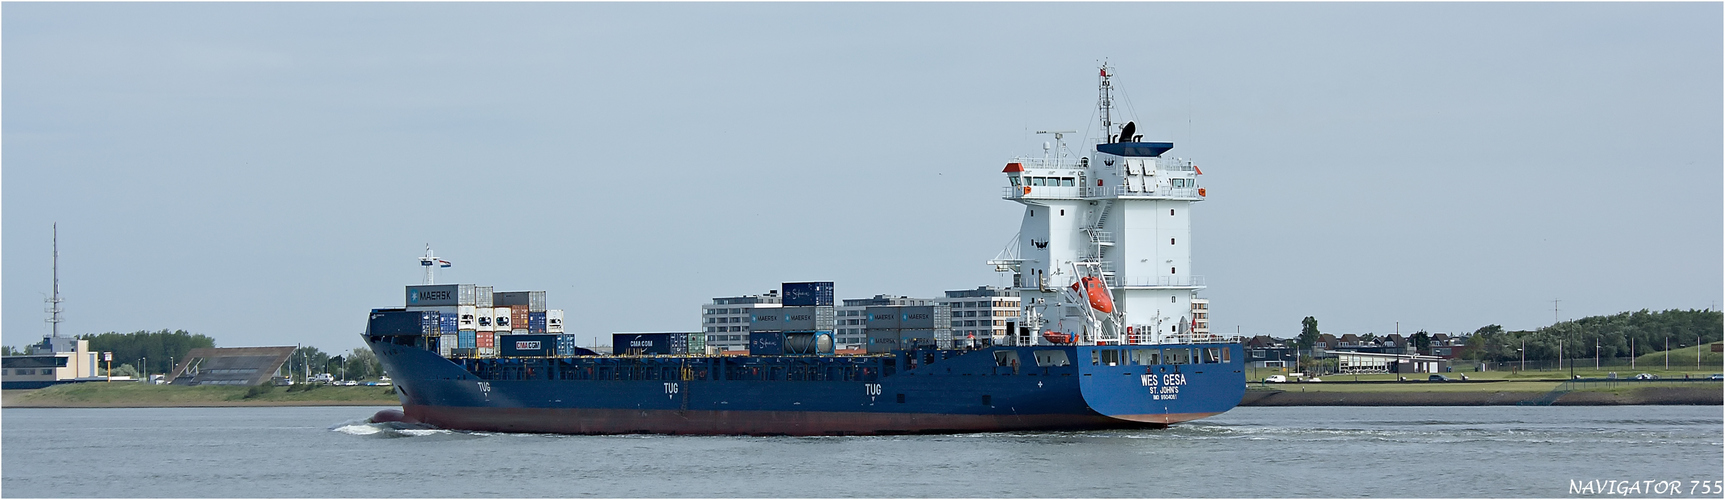 WES GESA / Container ship